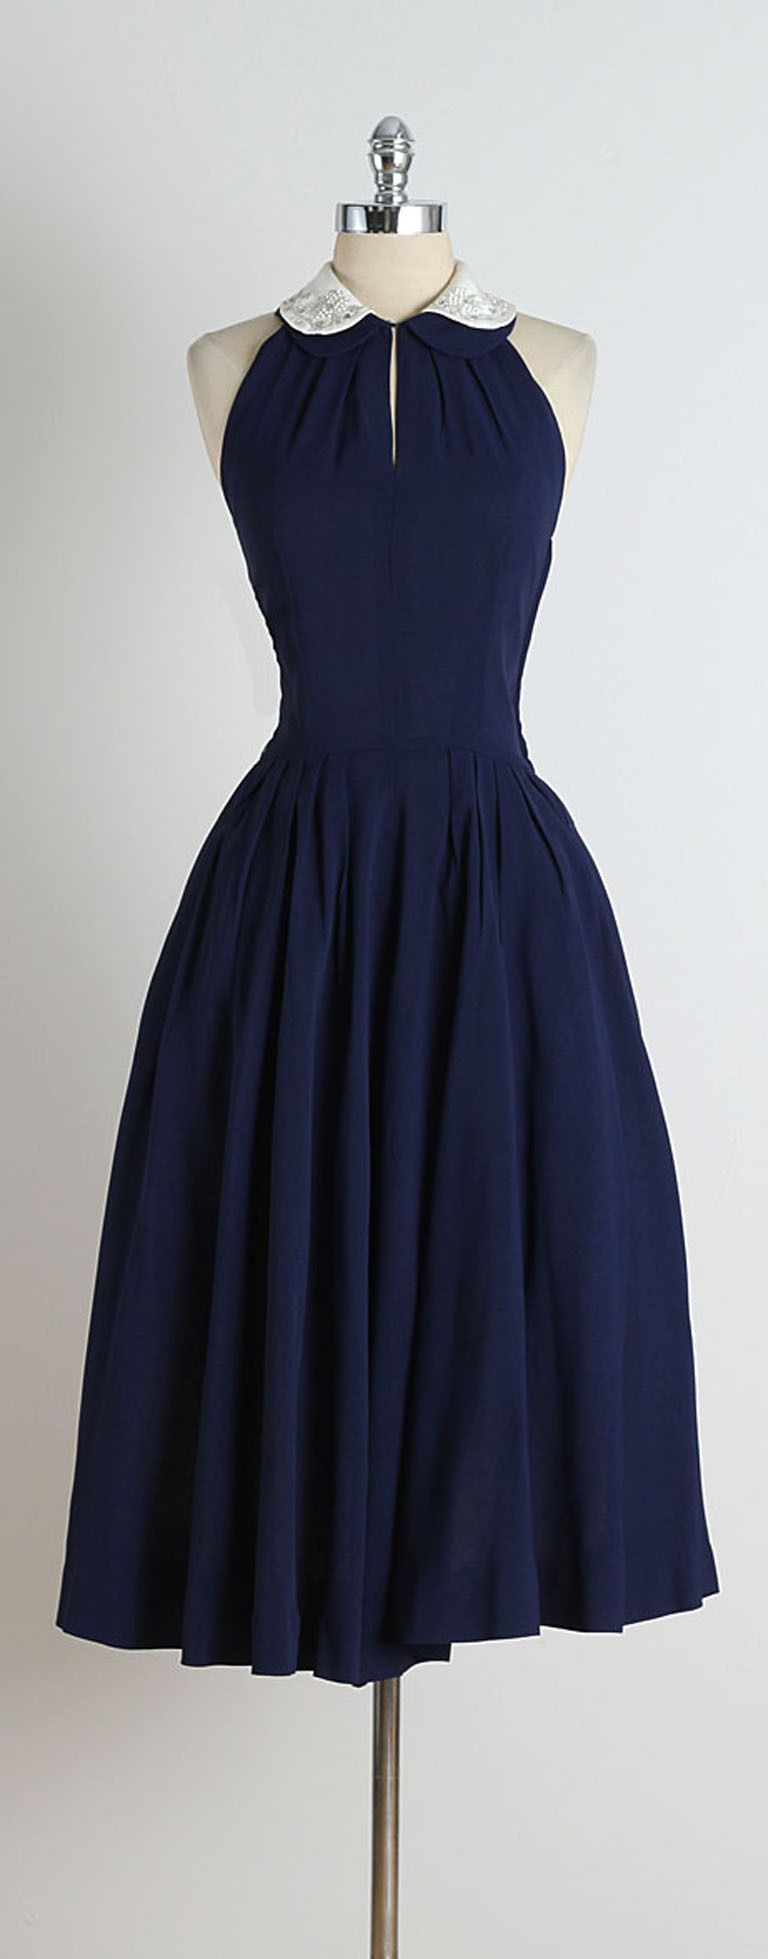 S blue jeweled collar halter dress pinterest s clothing